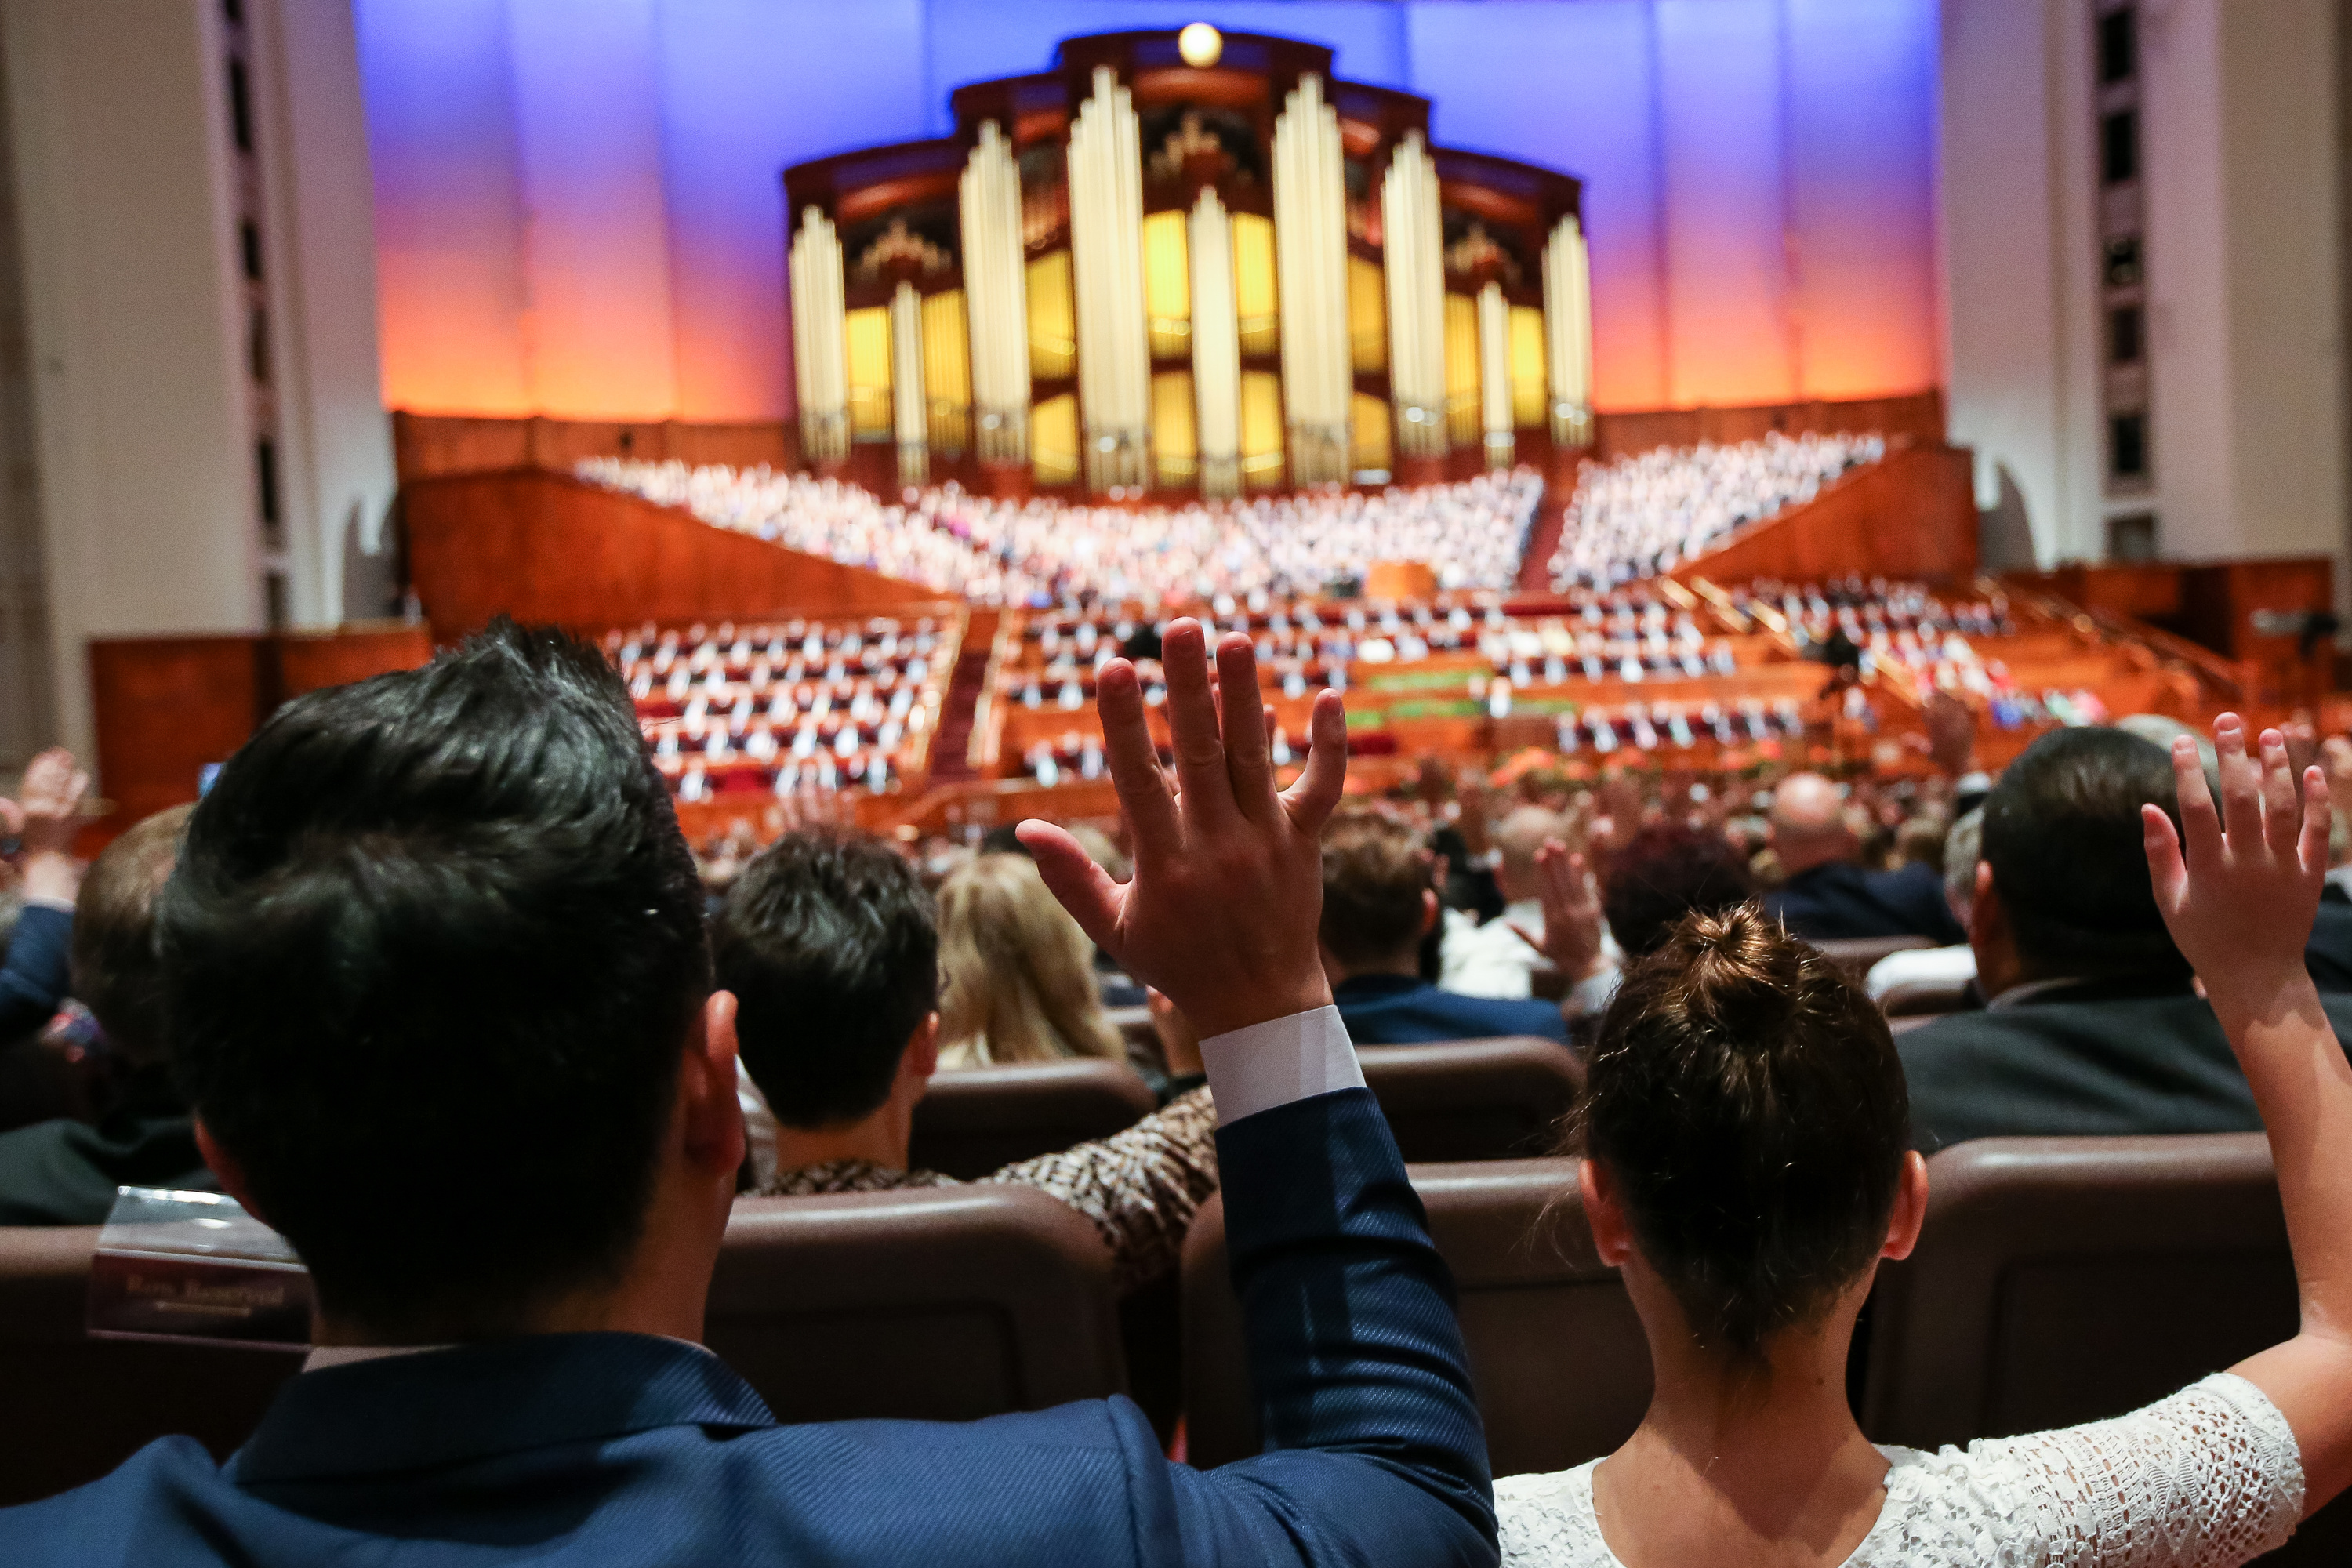 Conferencegoers raise their hands to sustain church leaders during the Saturday afternoon session of the 188th Semiannual General Conference of The Church of Jesus Christ of Latter-day Saints in the Conference Center in Salt Lake City on Saturday, Oct. 6, 2018.